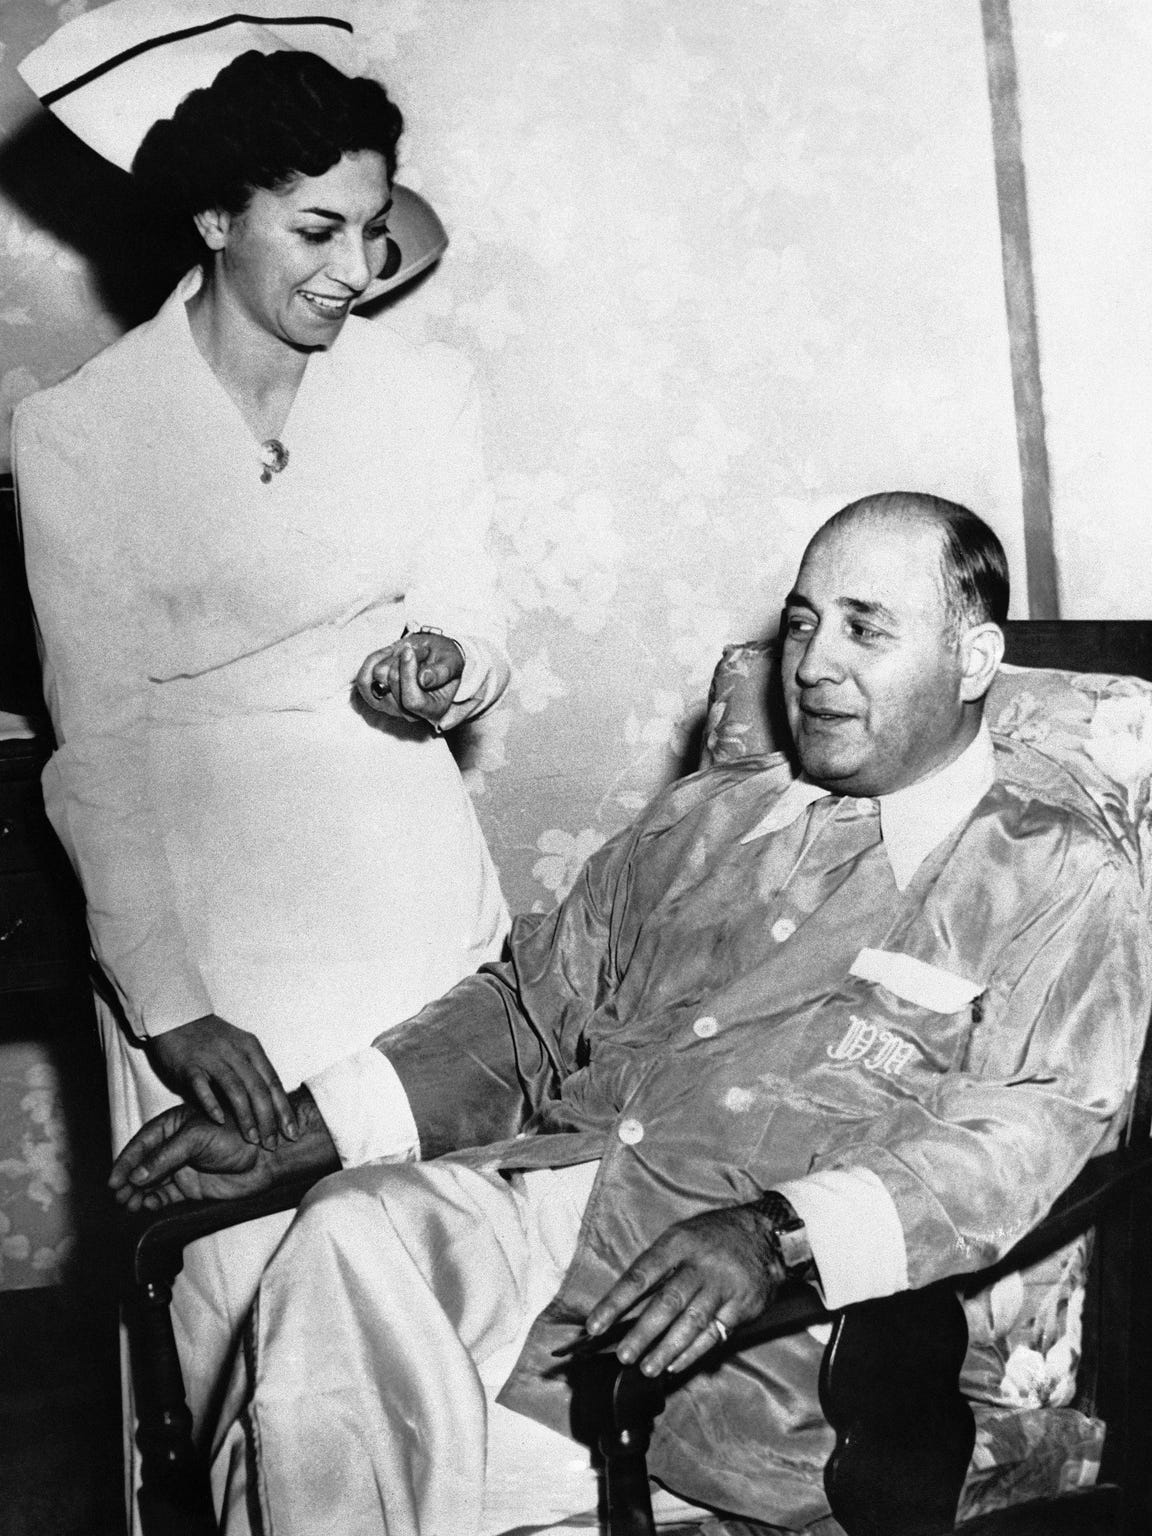 Willie Moretti said on Oct. 14, 1950 at St. Mary's Hospital in Passaic, New Jersey, that he is ready to tell the Senate Crime investigating committee all he knows about the rackets-which he says is nothing. He is shown ready to leave the hospital. With him is his nurse Mrs. Marie Puzio.